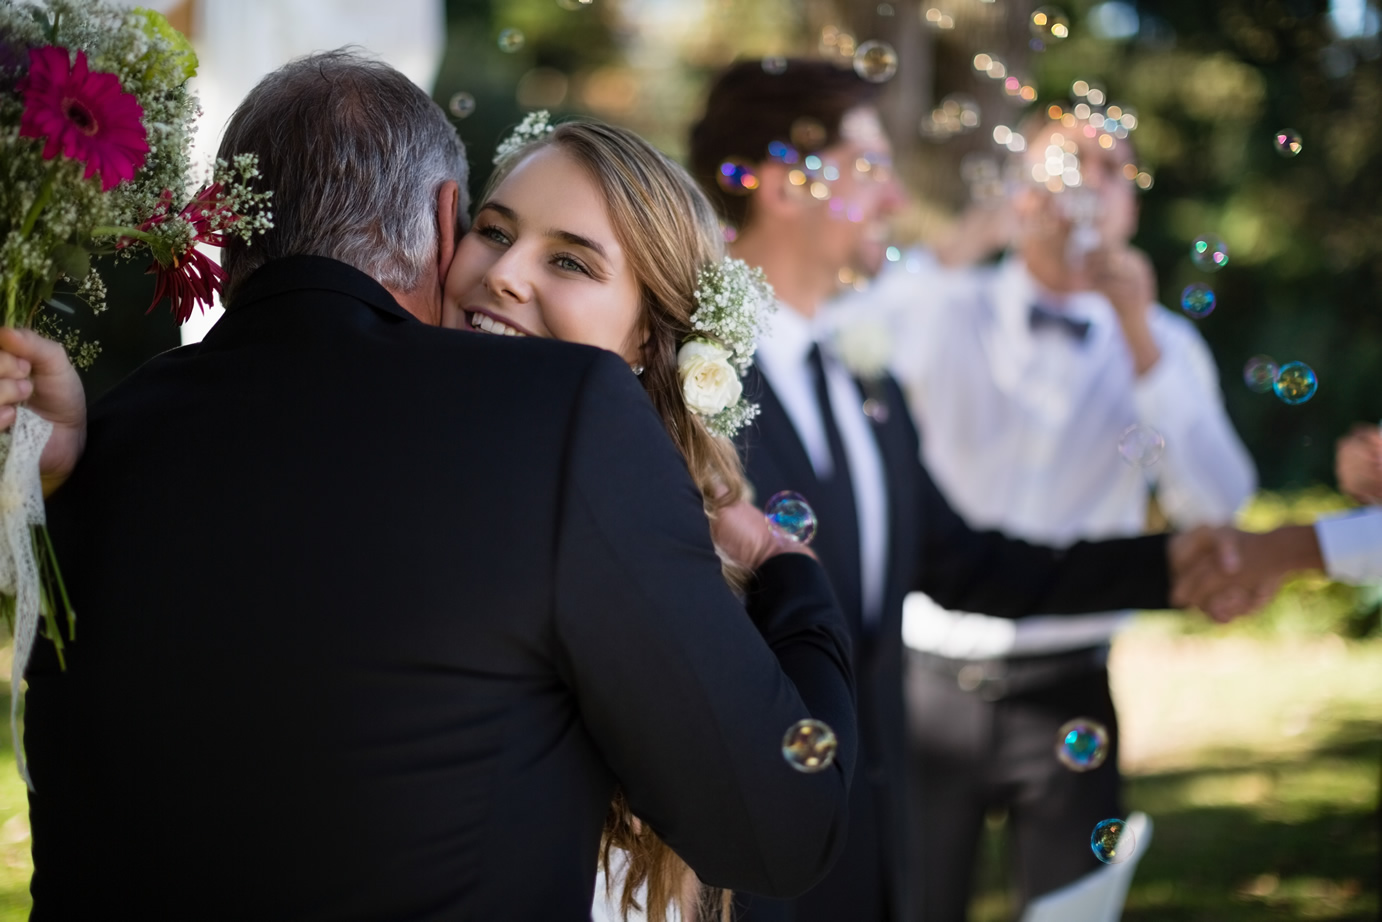 Managing the Parents When Planning a Wedding